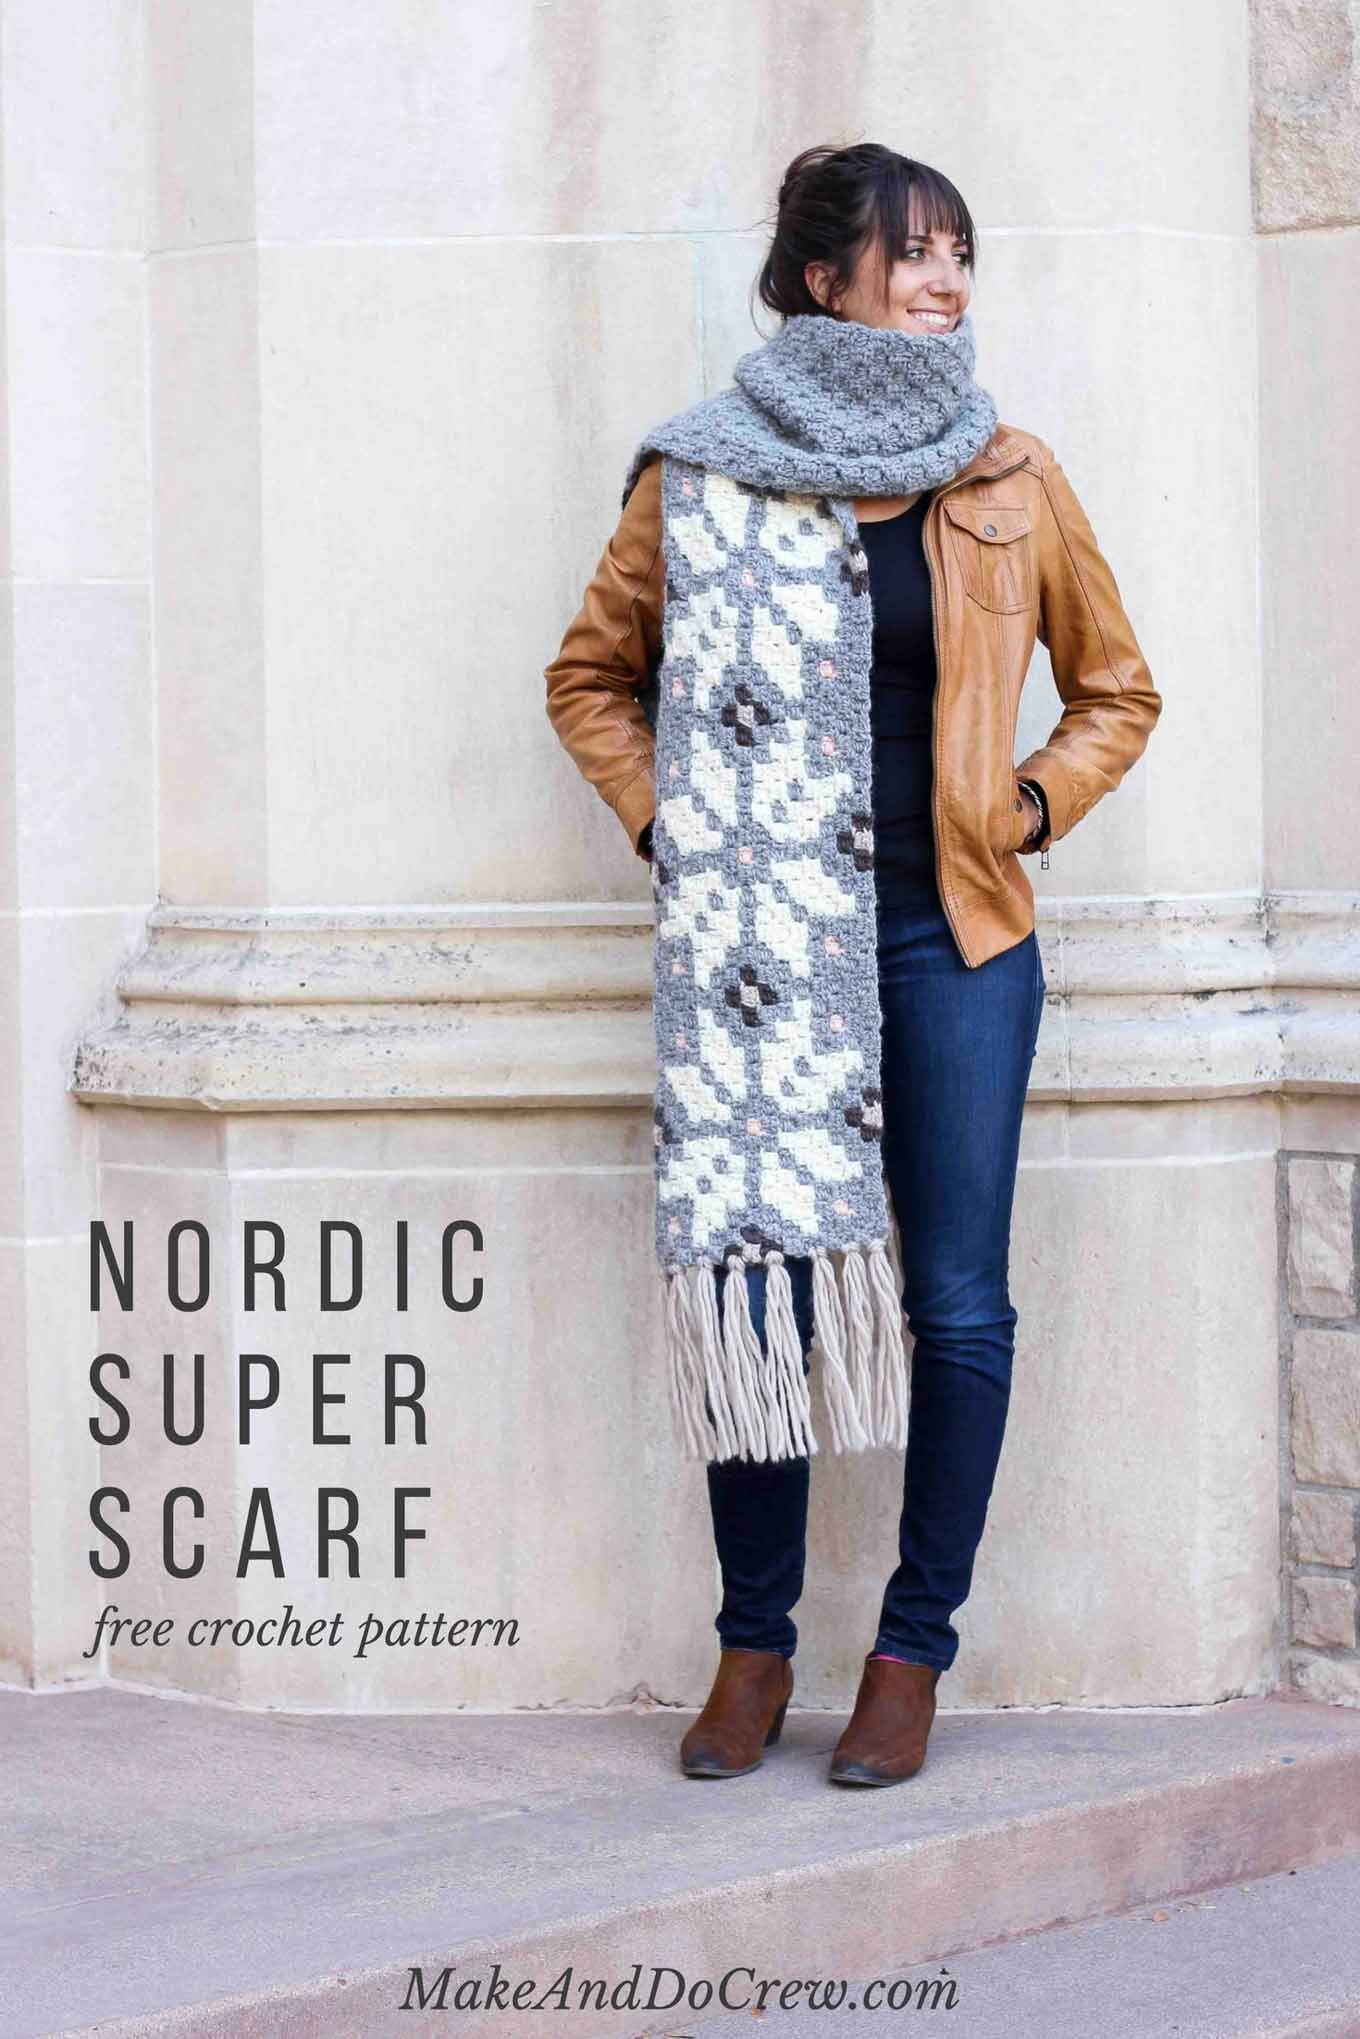 e70d4b6895999 Whether you live in the North Pole or just want to jump on the super scarf  ...